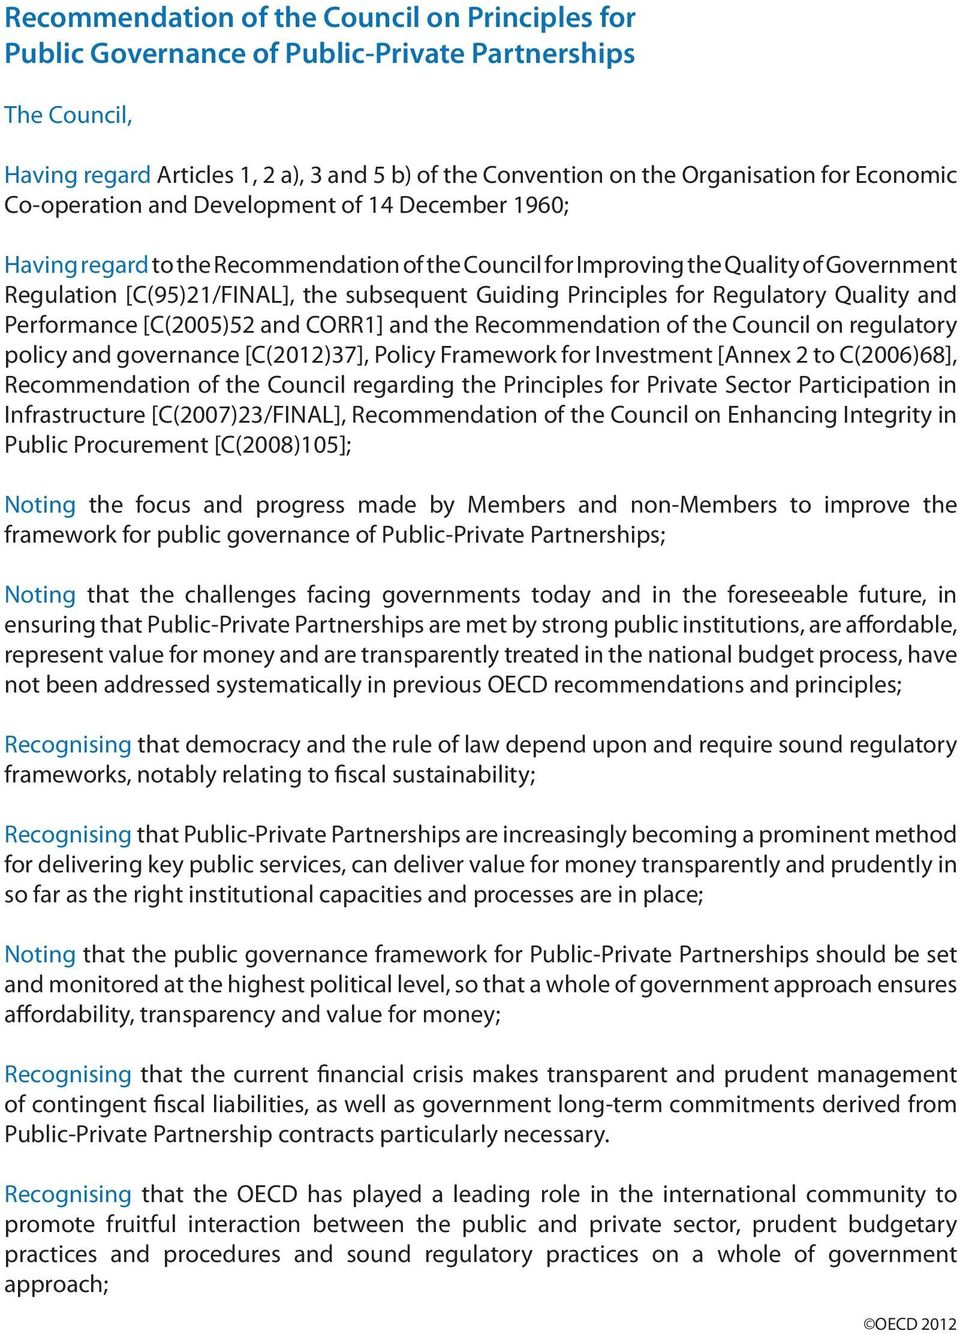 Guiding Principles for Regulatory Quality and Performance [C(2005)52 and CORR1] and the Recommendation of the Council on regulatory policy and governance [C(2012)37], Policy Framework for Investment